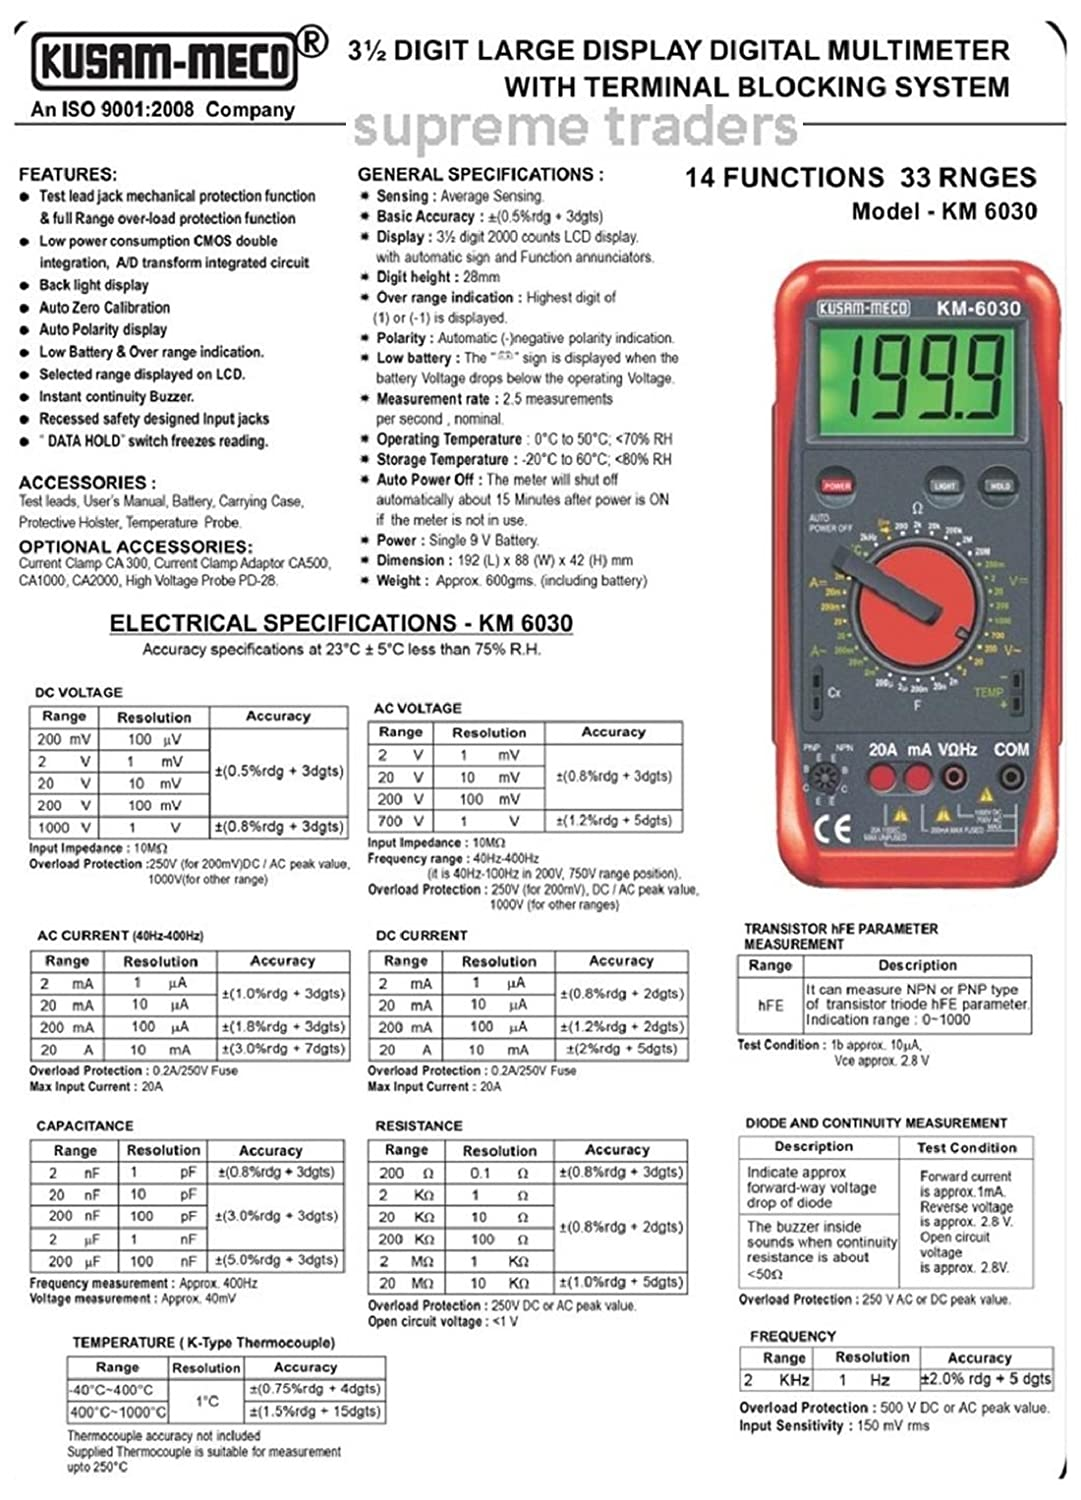 Kusam Meco Km 6030 3 Digit Digital Multimeter With Terminal Functions Of Integrated Circuit Blocking System By Supreme Traders Supertronics1989 Industrial Scientific